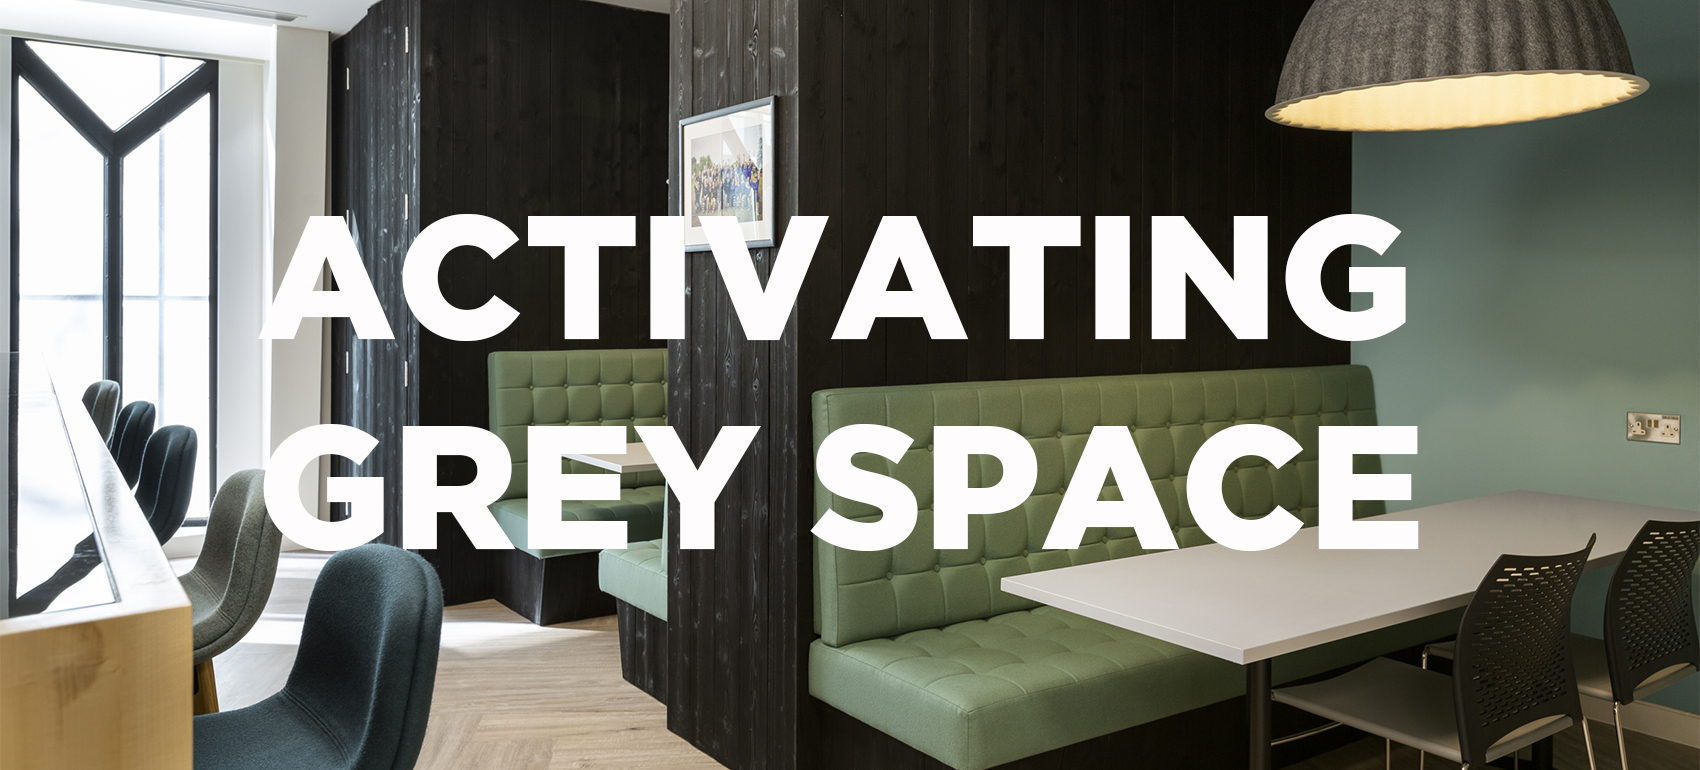 Activating Grey Space